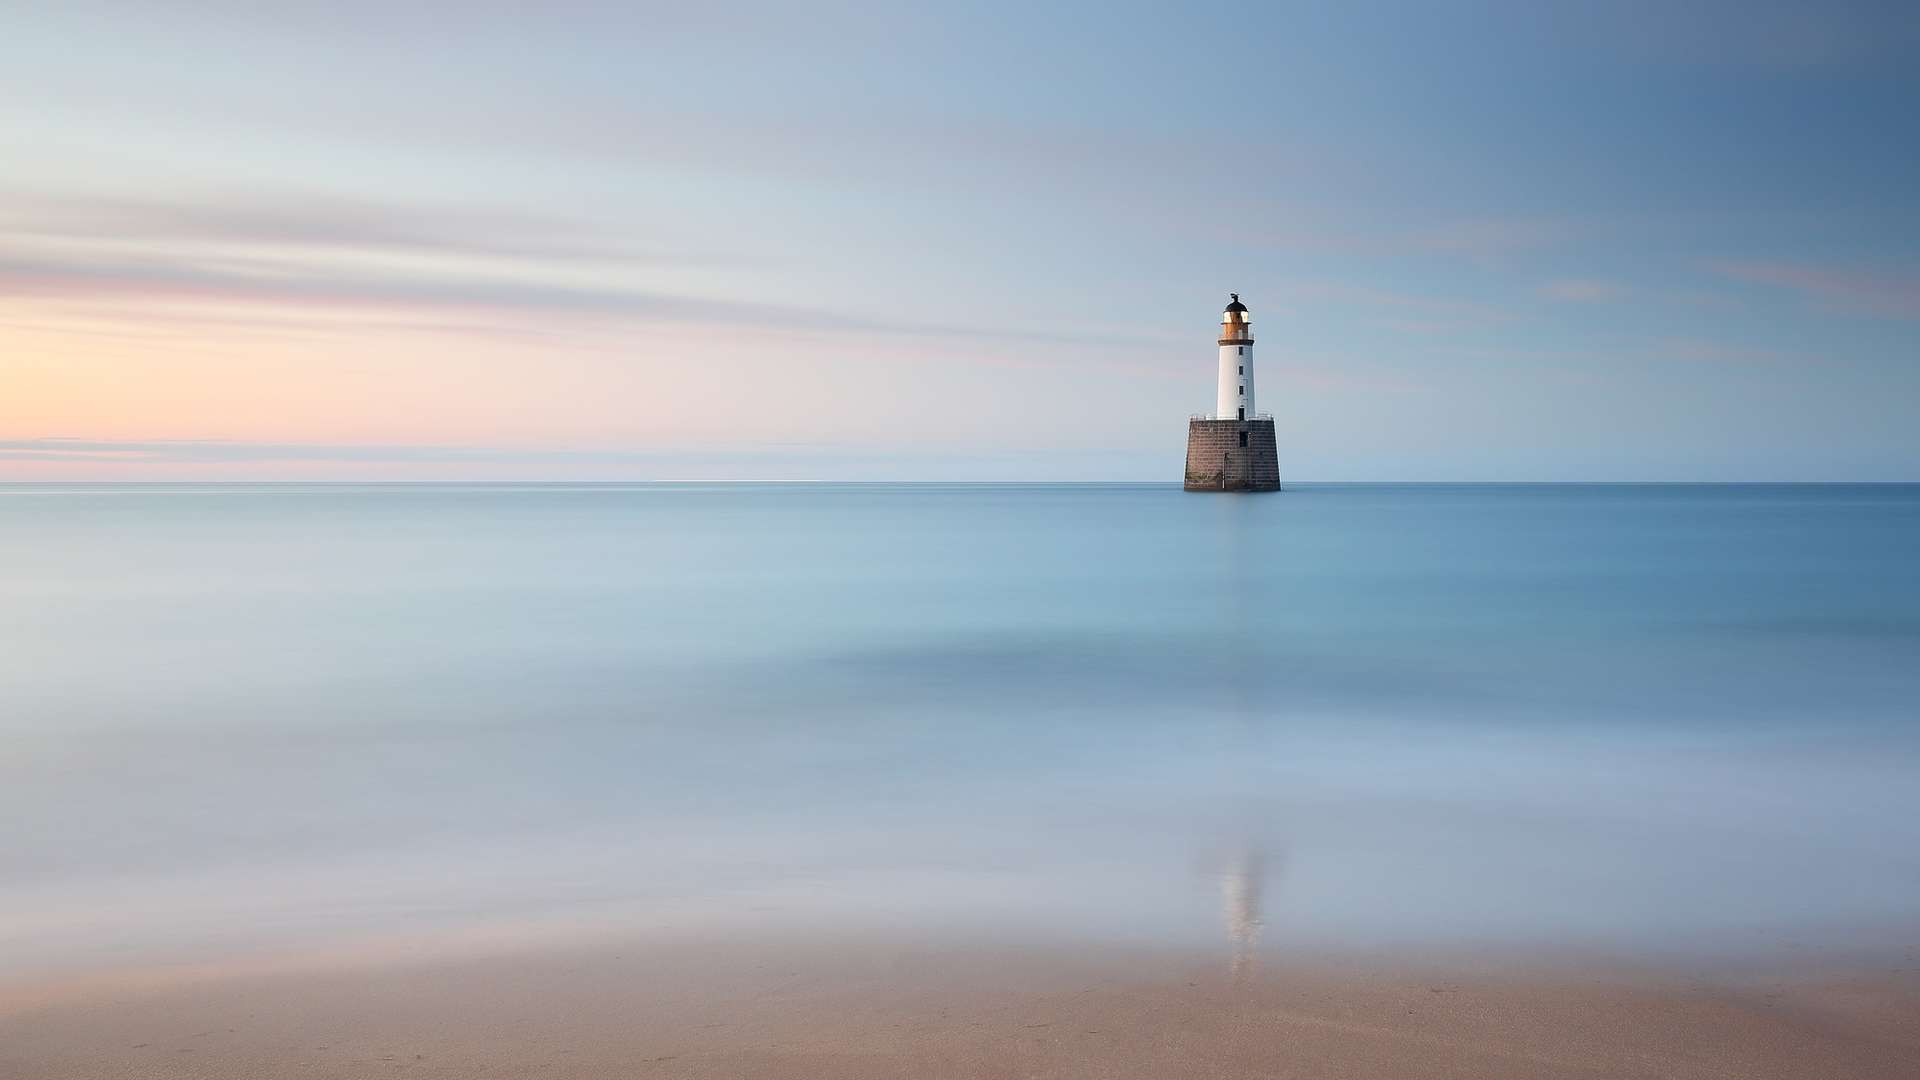 A lighthouse and a body of water